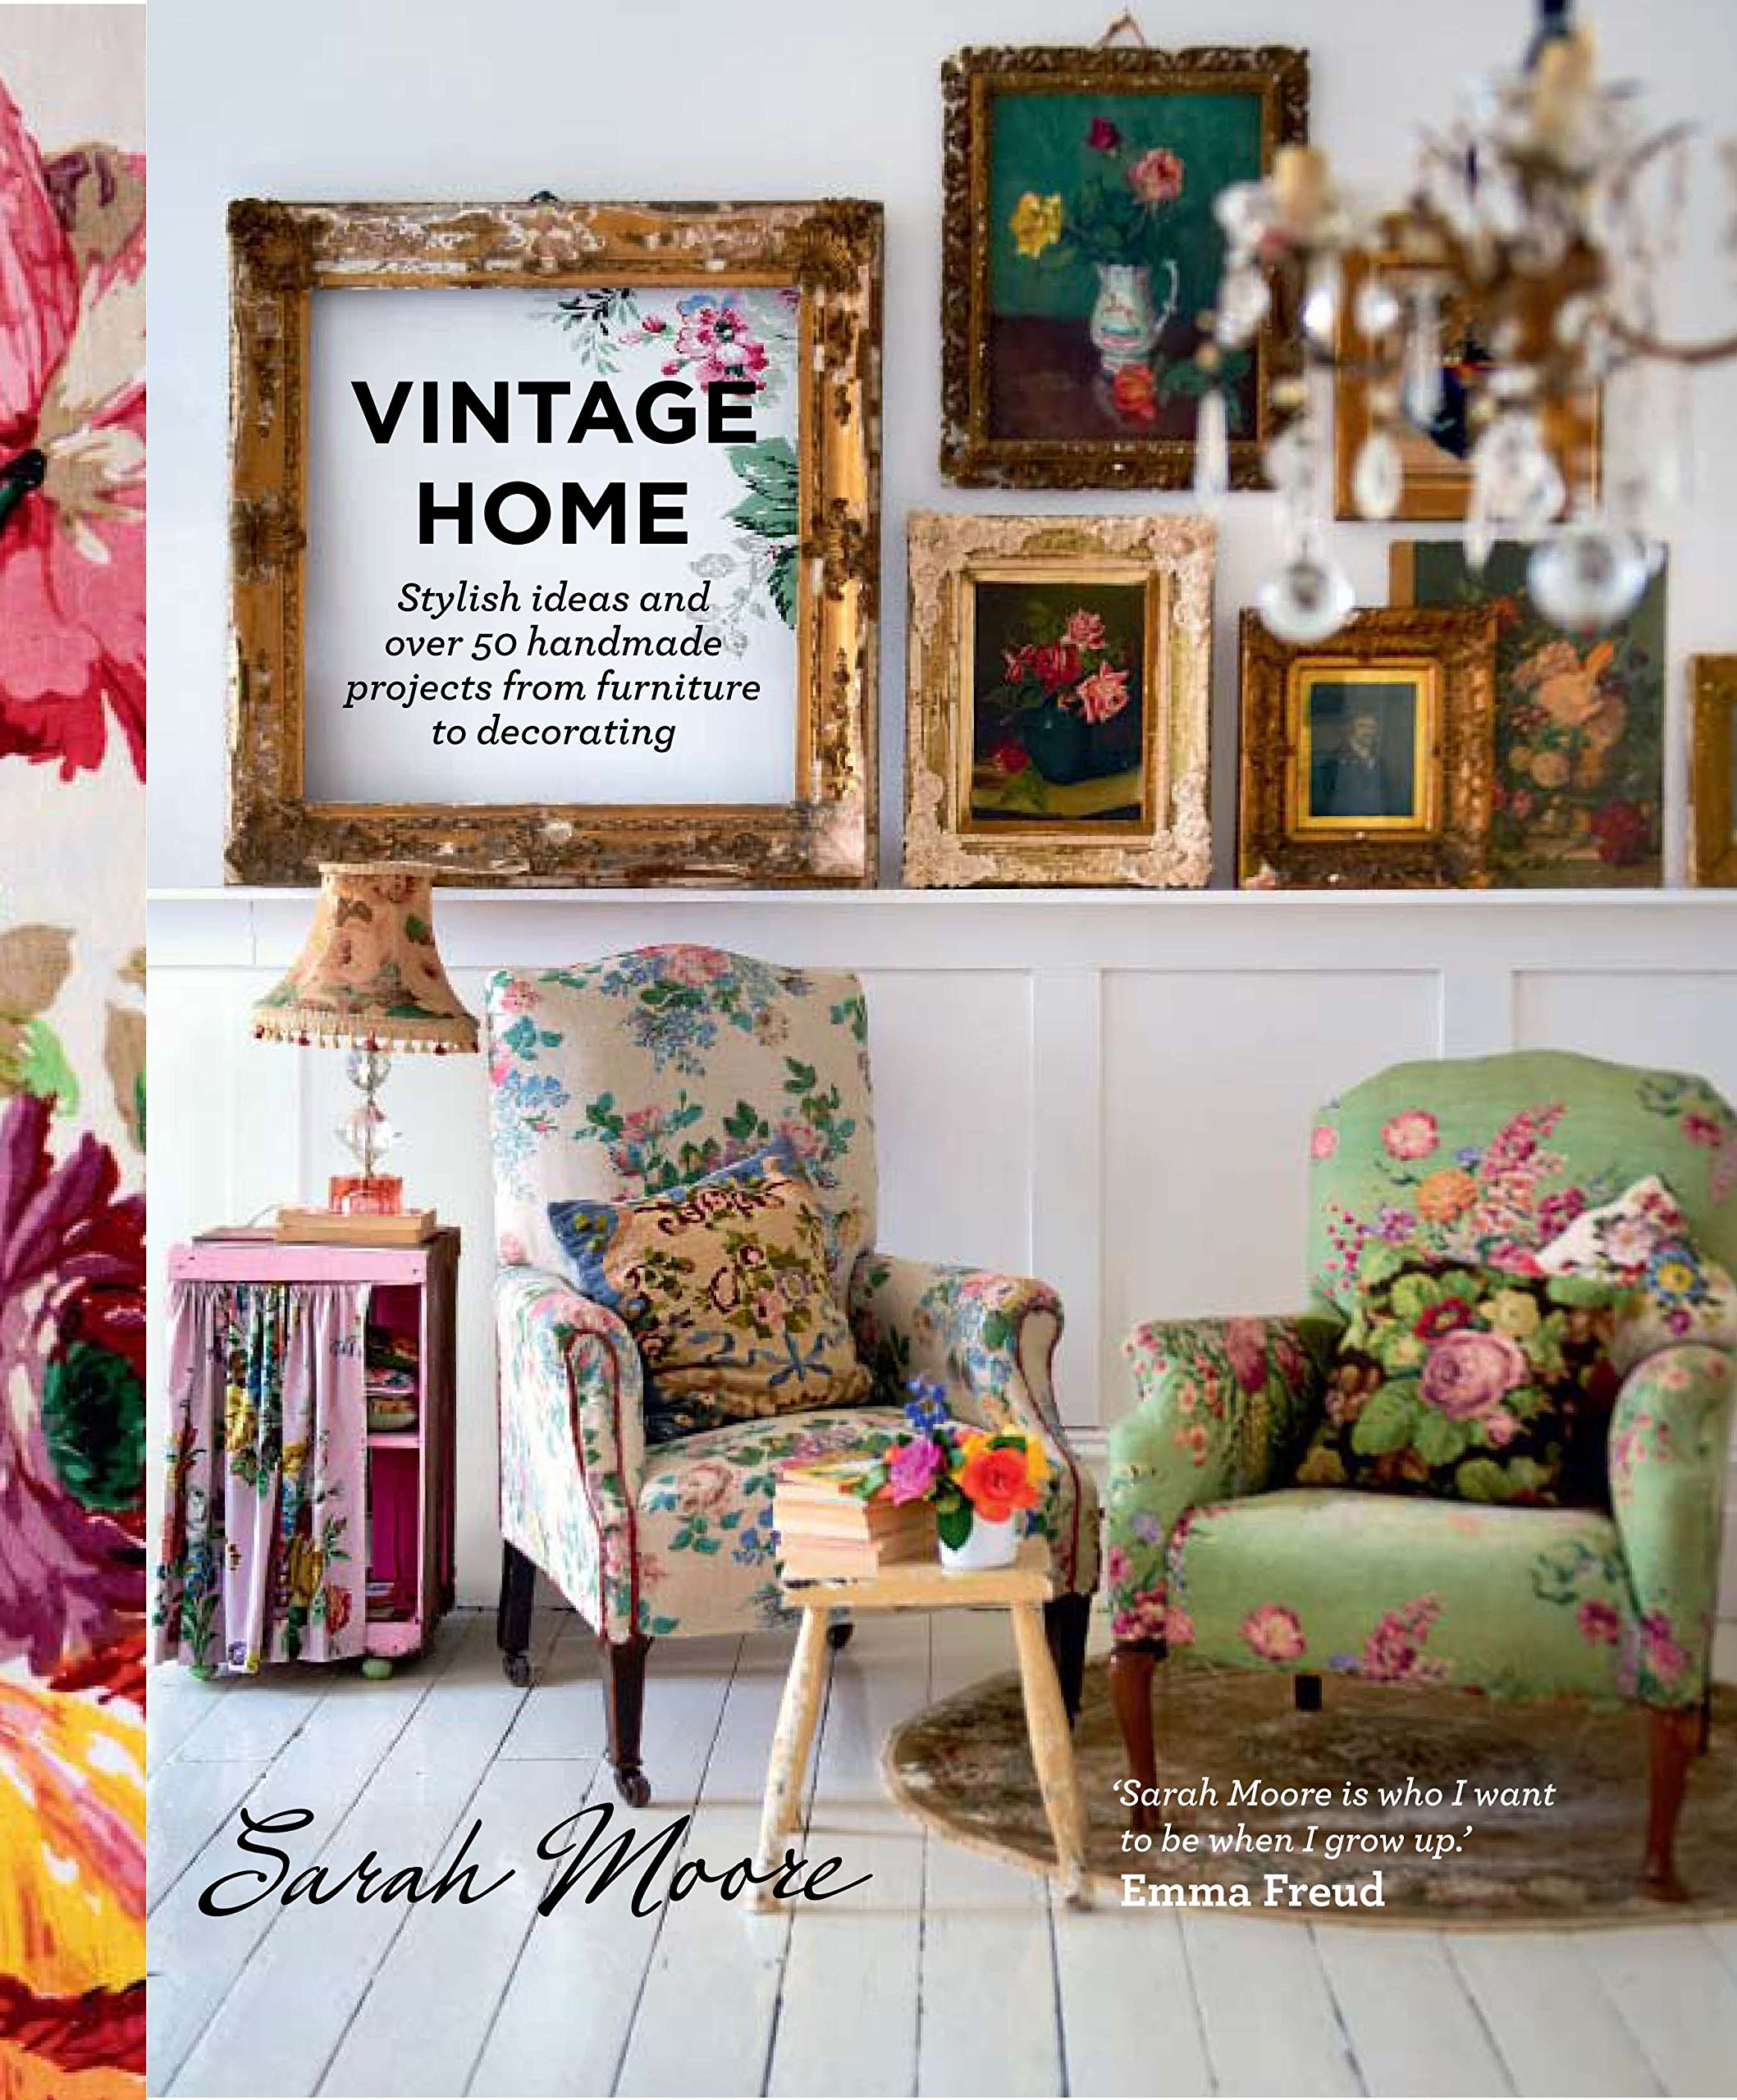 Amazon.com: Vintage Home (9780857831422): Sarah Moore: Books